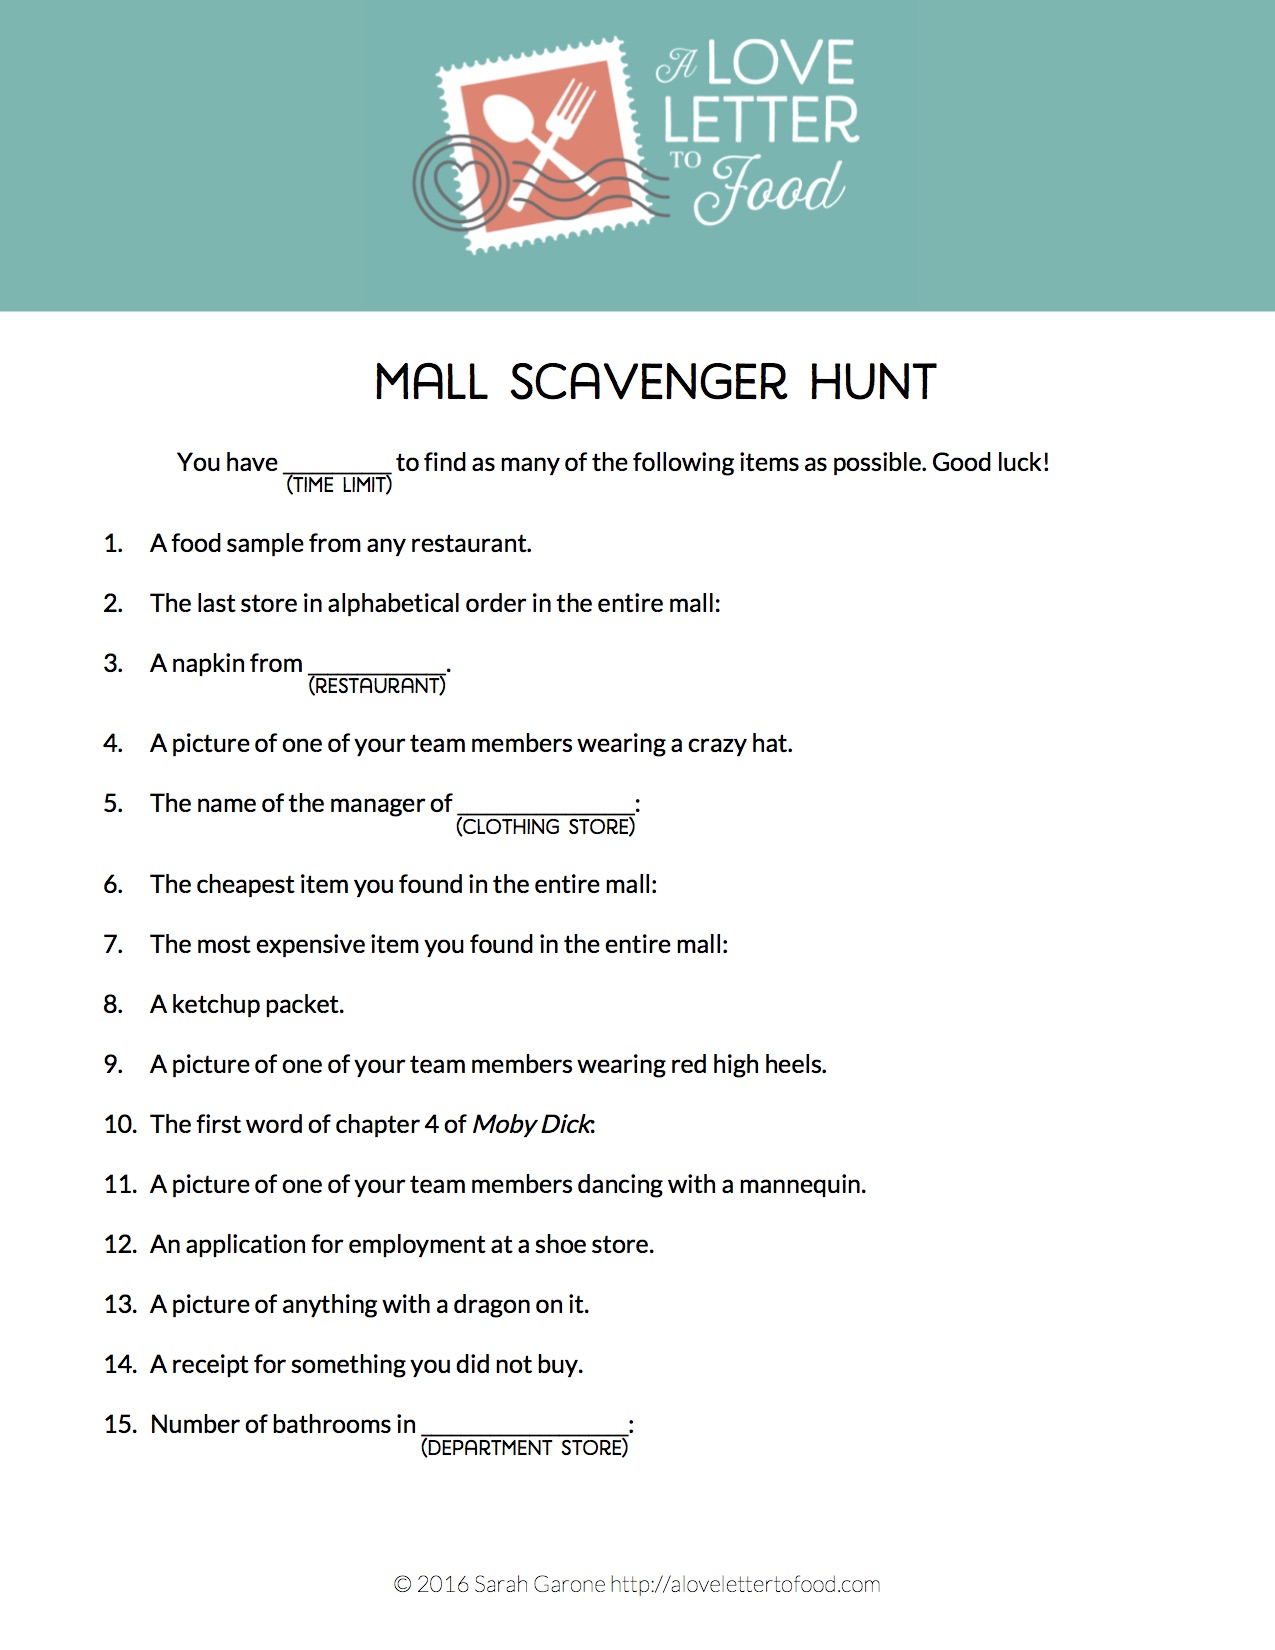 Mall Scavenger Hunt A Love Letter To Food